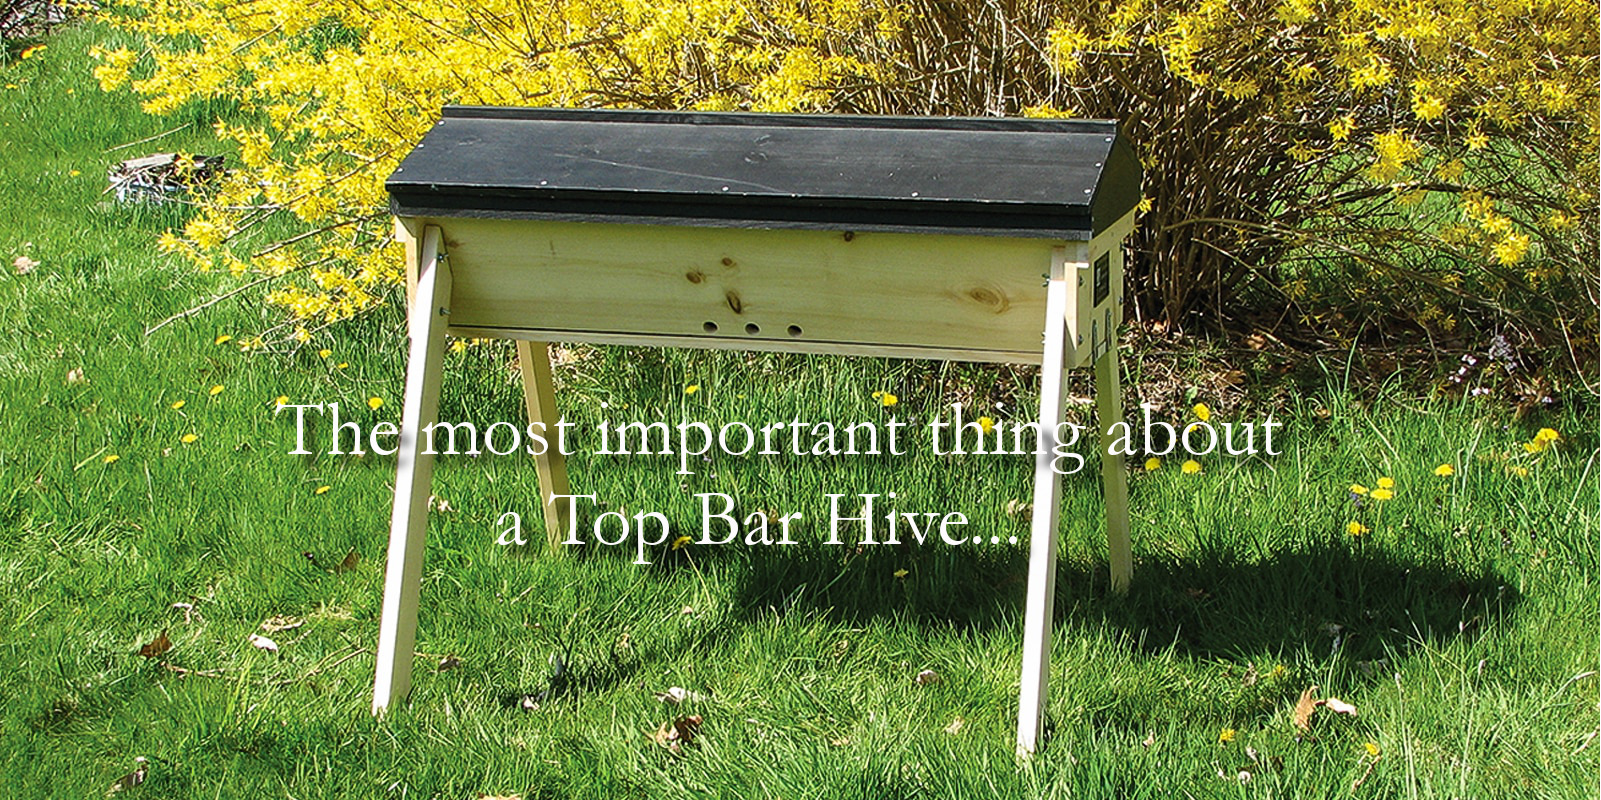 The most important thing about a top bar hive.